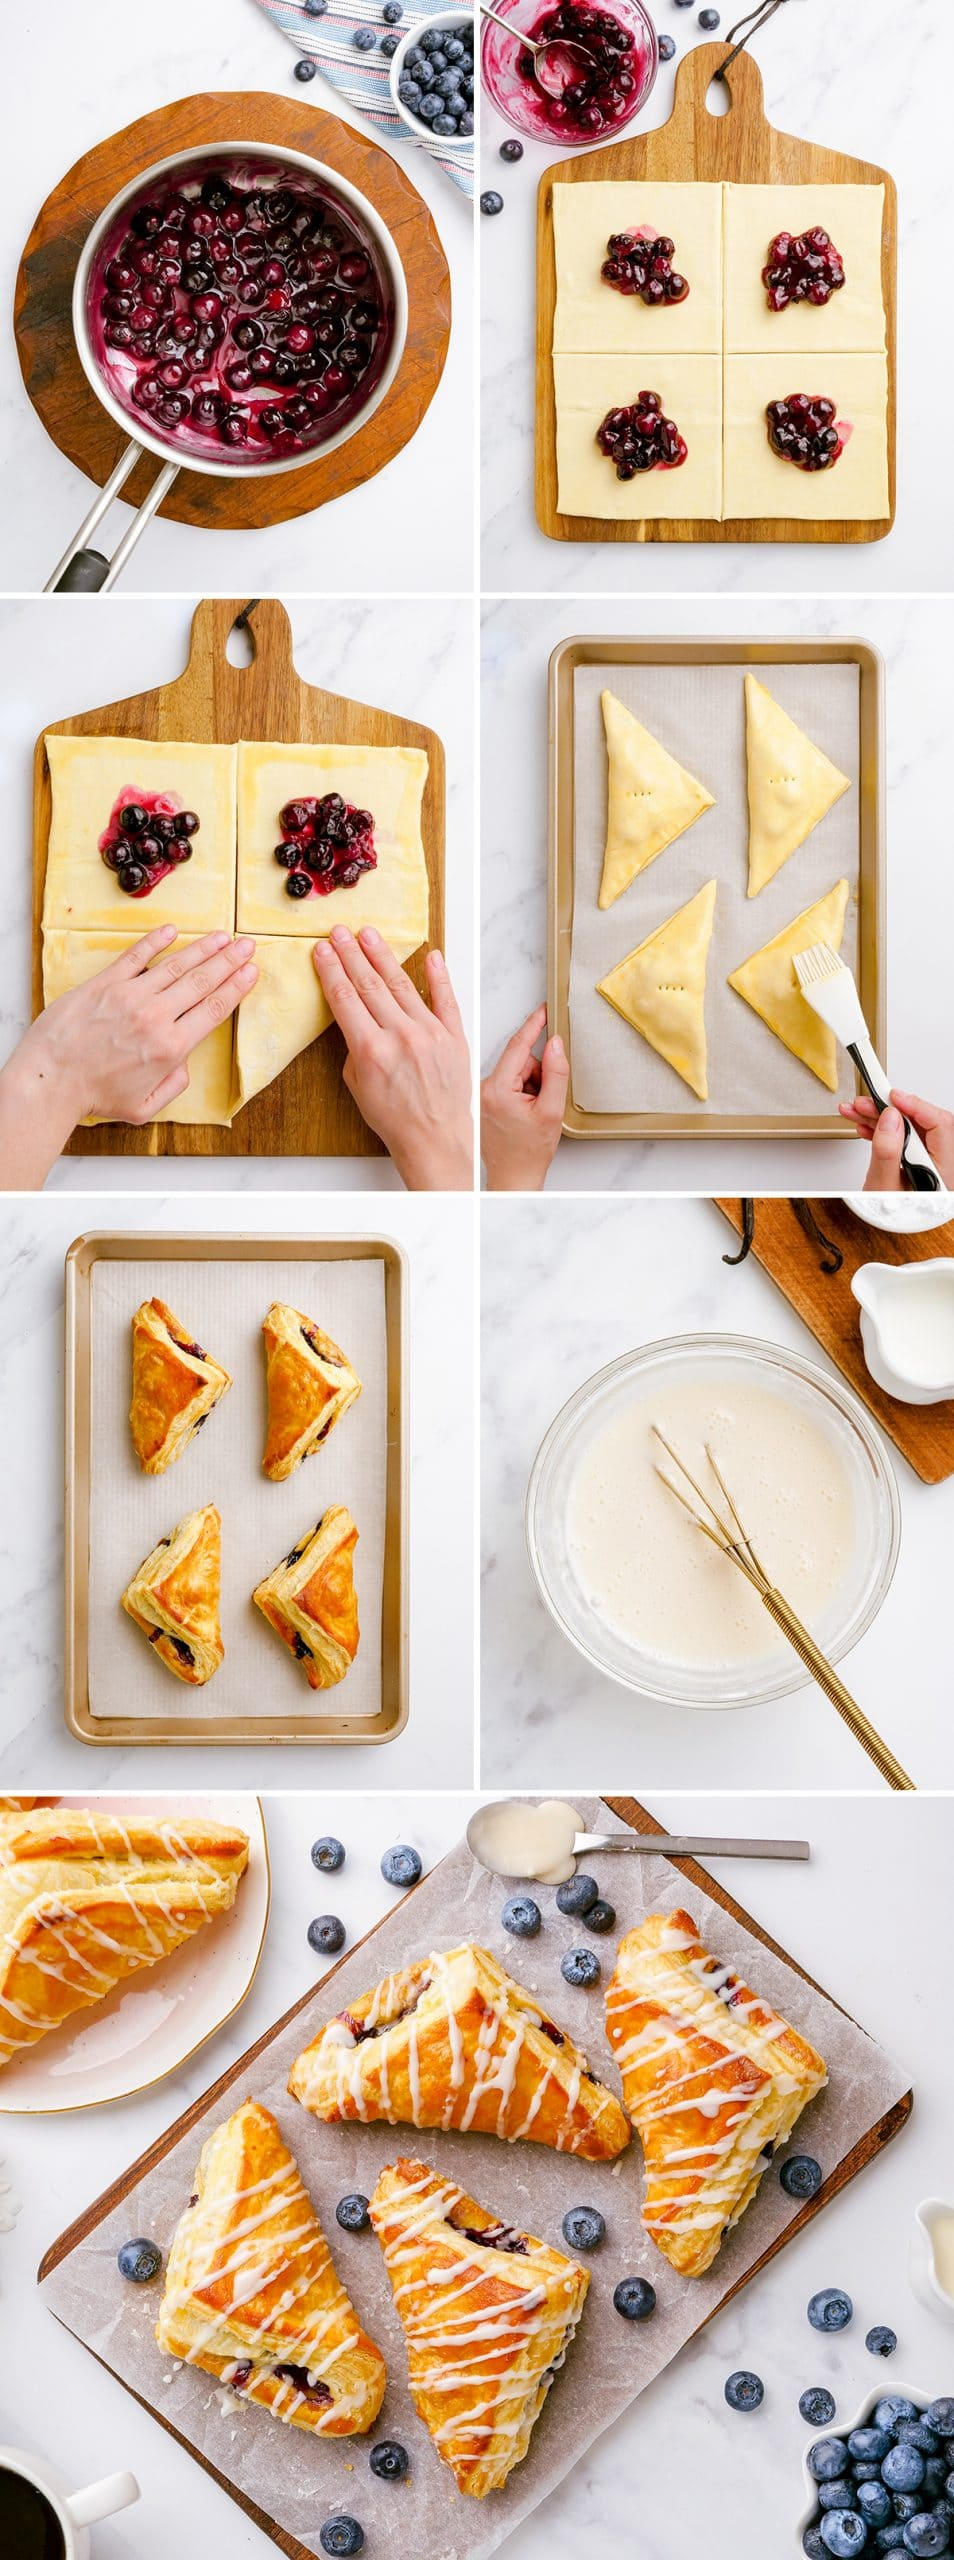 A collage of step by step photos showing how to make blueberry turnovers.